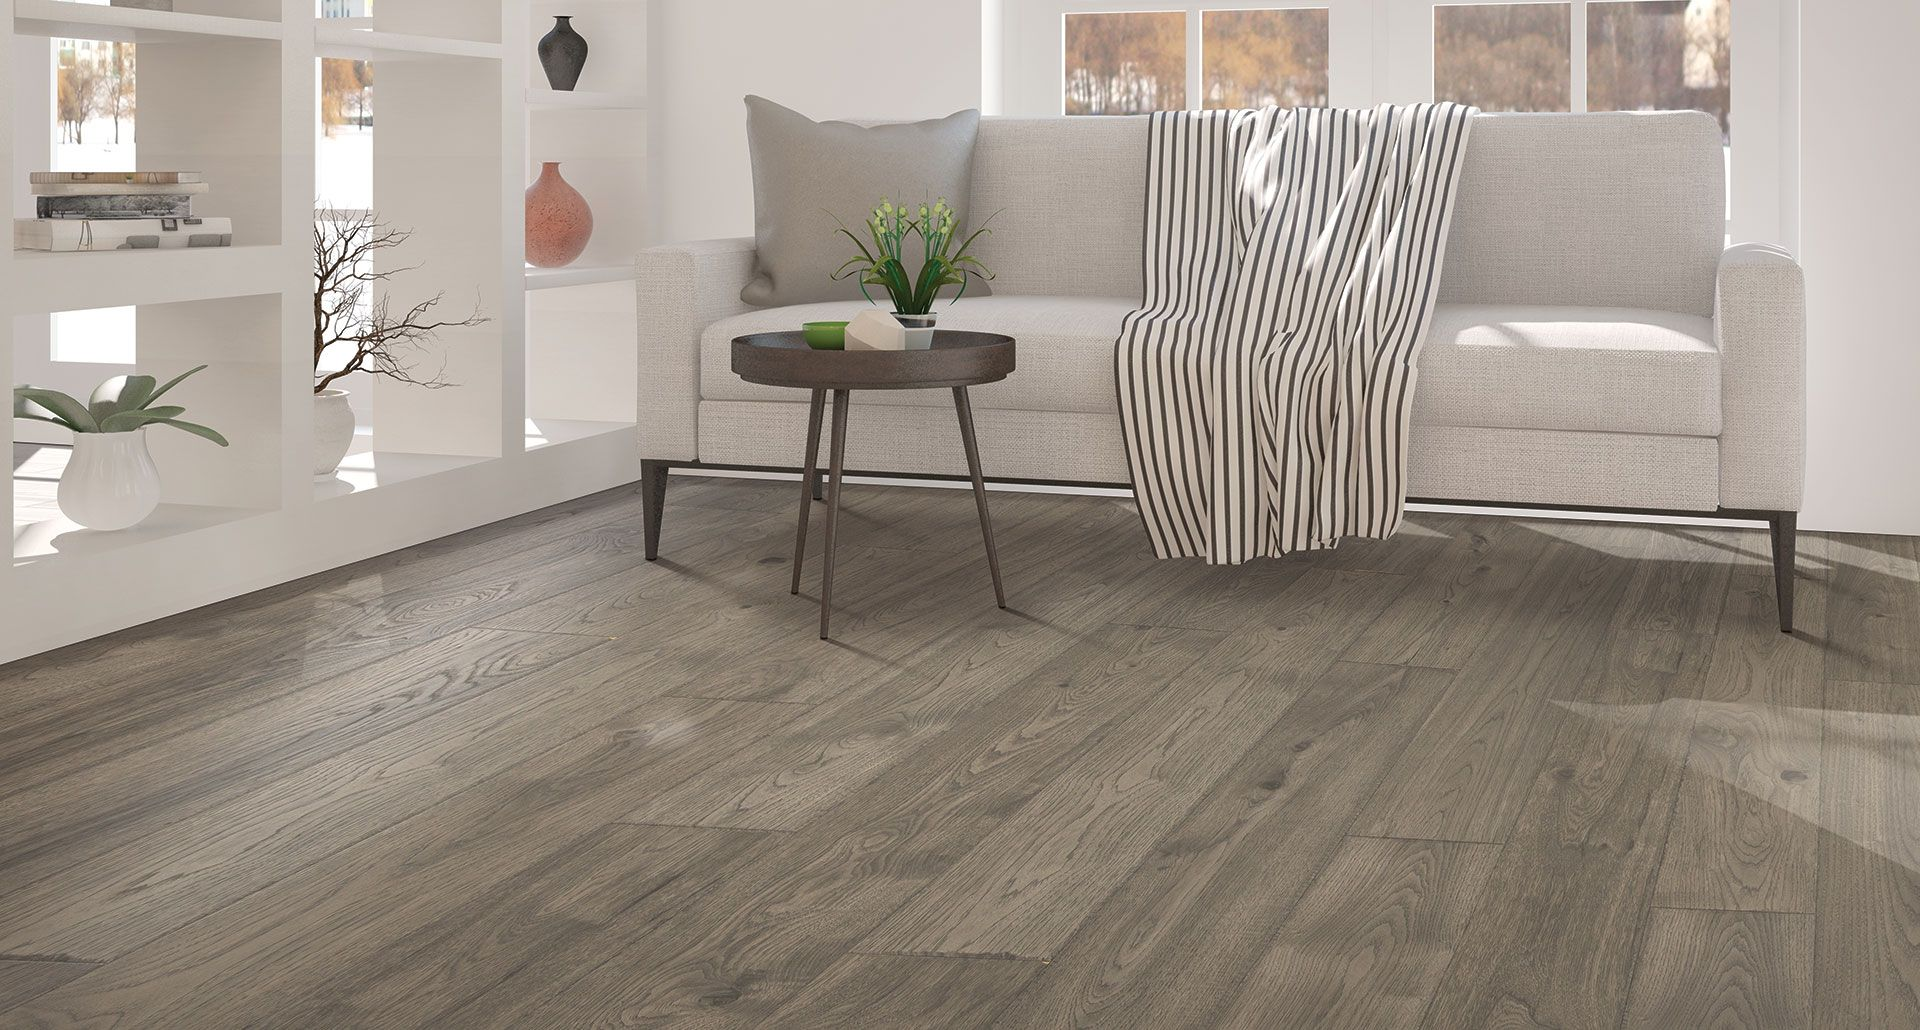 Anchor Grey Oak Laminate Floor Natural Wood Look 12mm Thick 1 Strip Plank Laminate Flooring Lifeti Laminate Flooring Colors Flooring Oak Laminate Flooring